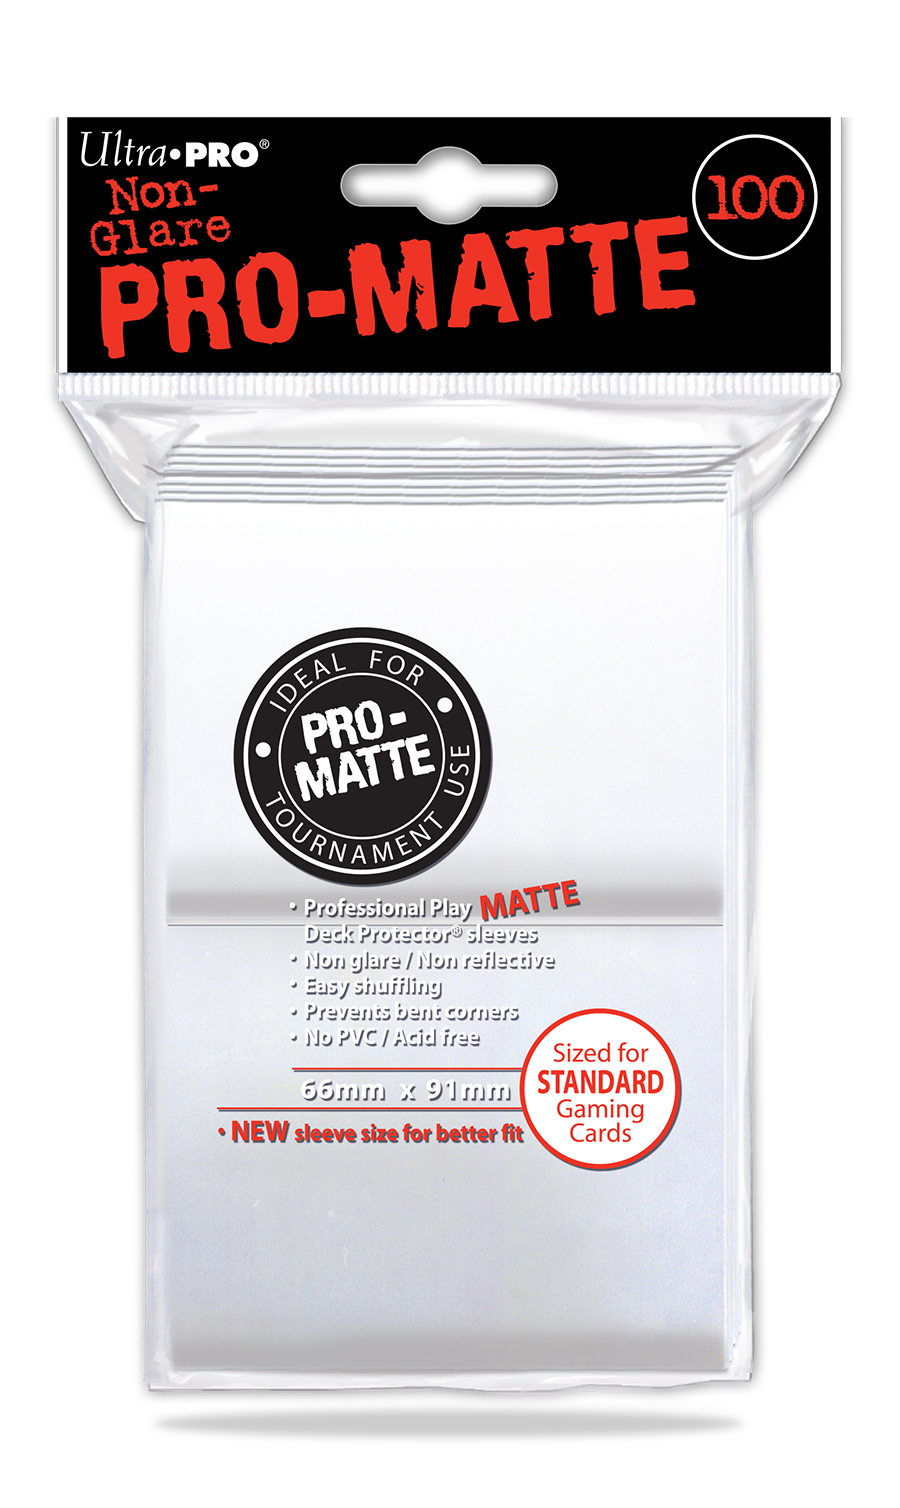 Ultra Pro Pro-Matte Standard Deck Protector Sleeves White 100ct